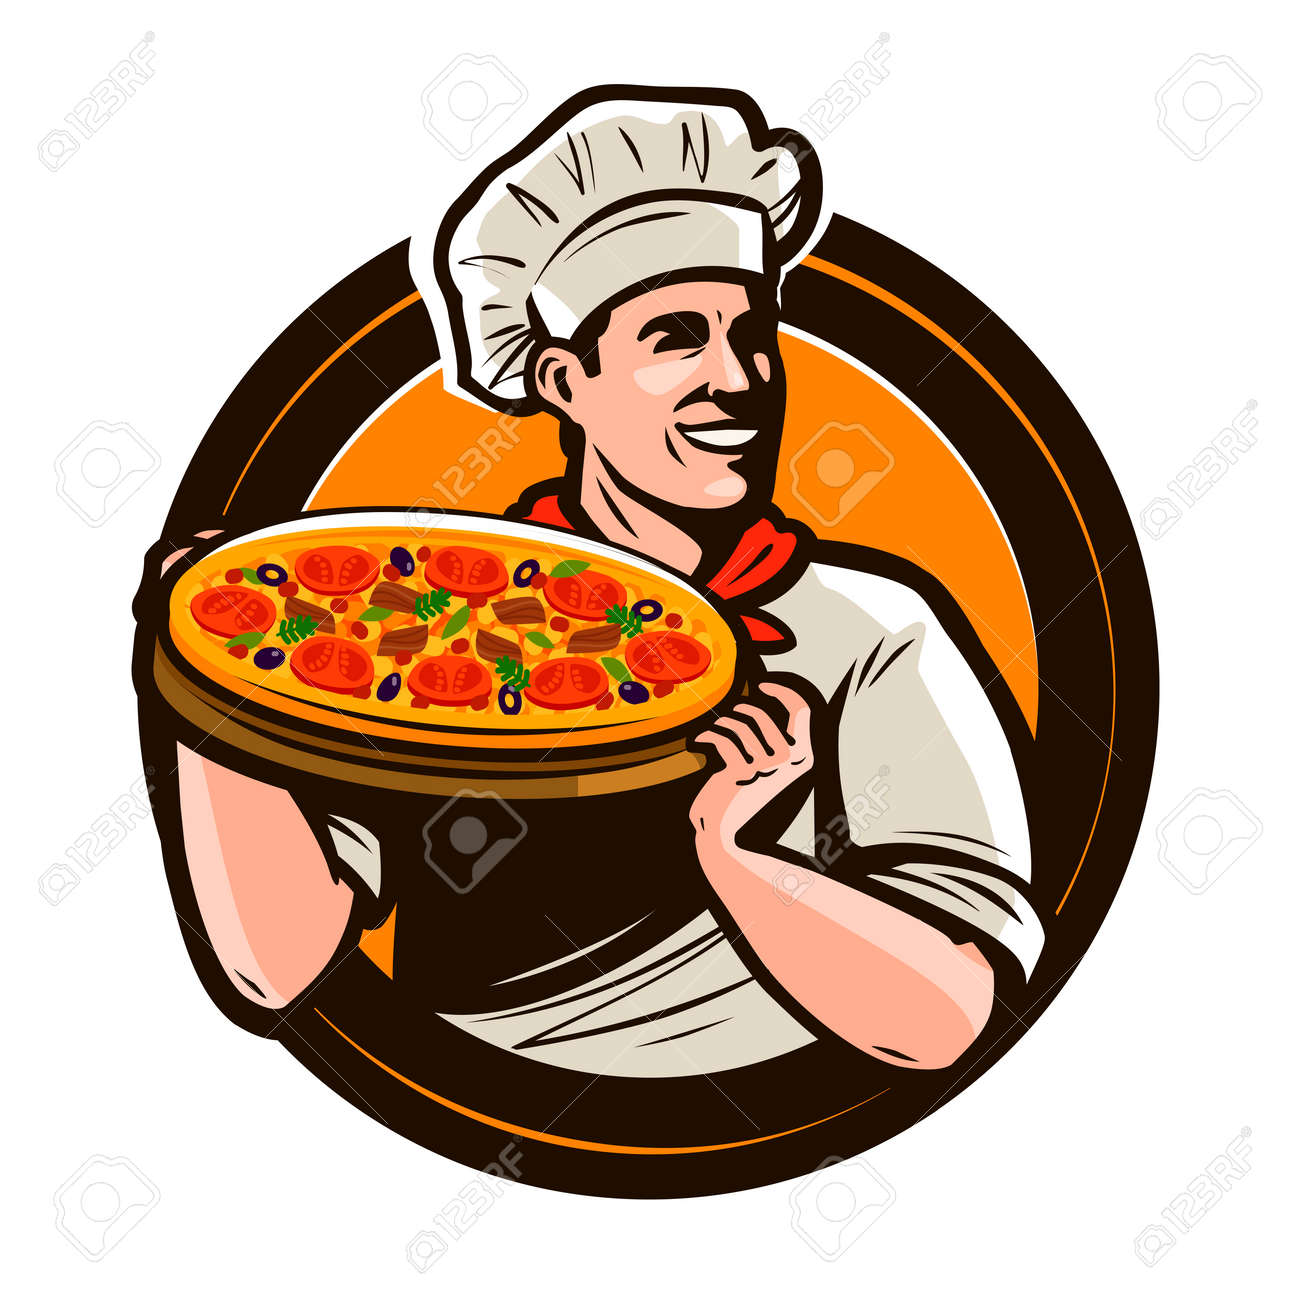 Chef holding a tray of pizza. Fast food, restaurant, pizzeria logo. Vector illustration - 104022865